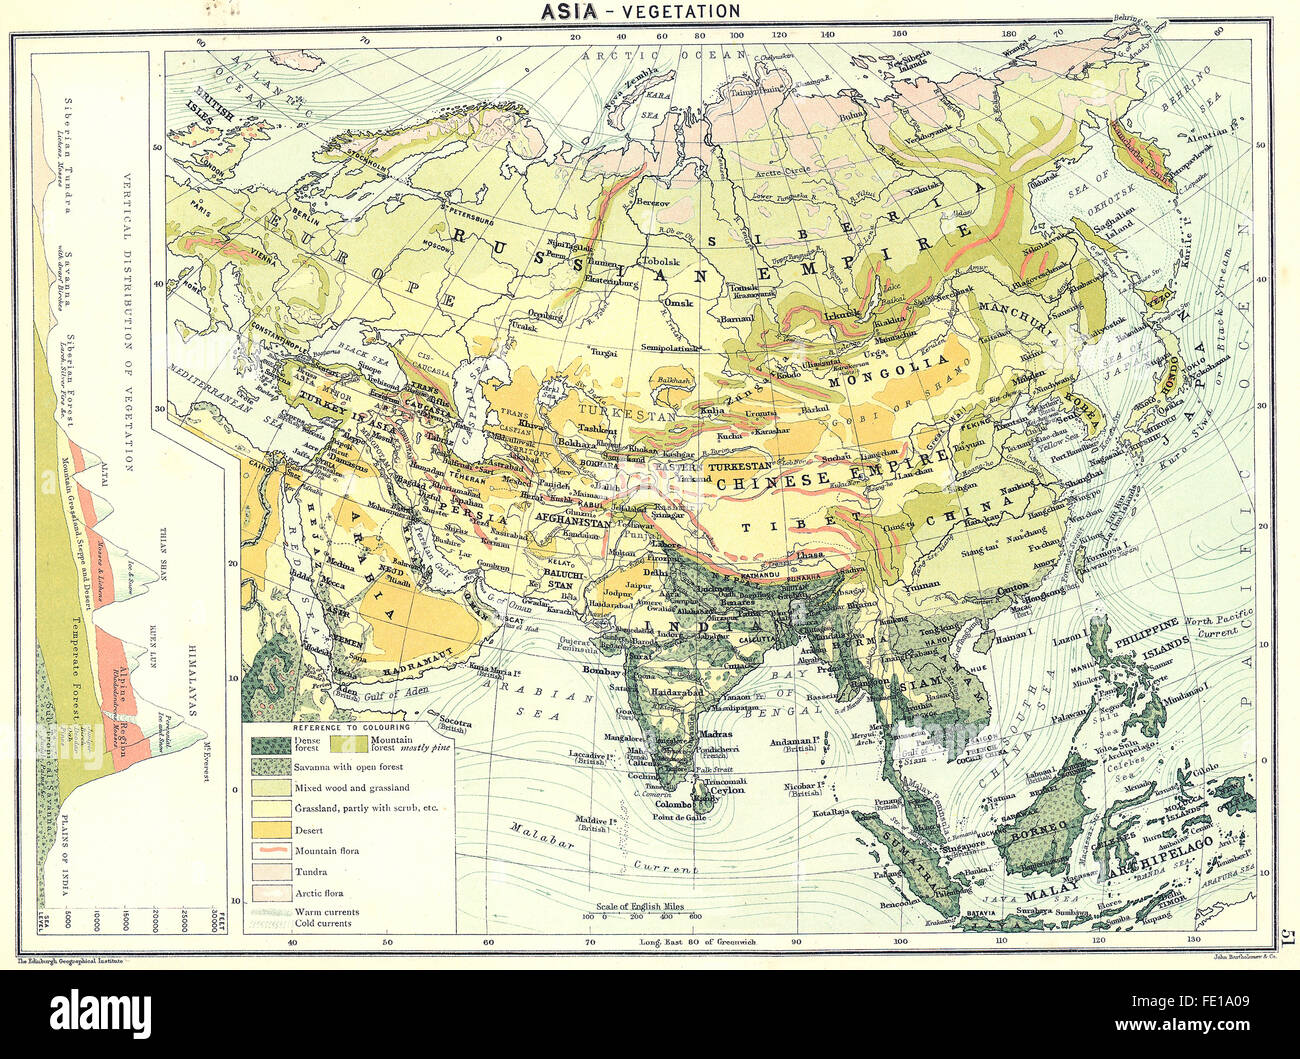 Asia Vegetation 1900 Antique Map Stock Photo 94686825 Alamy